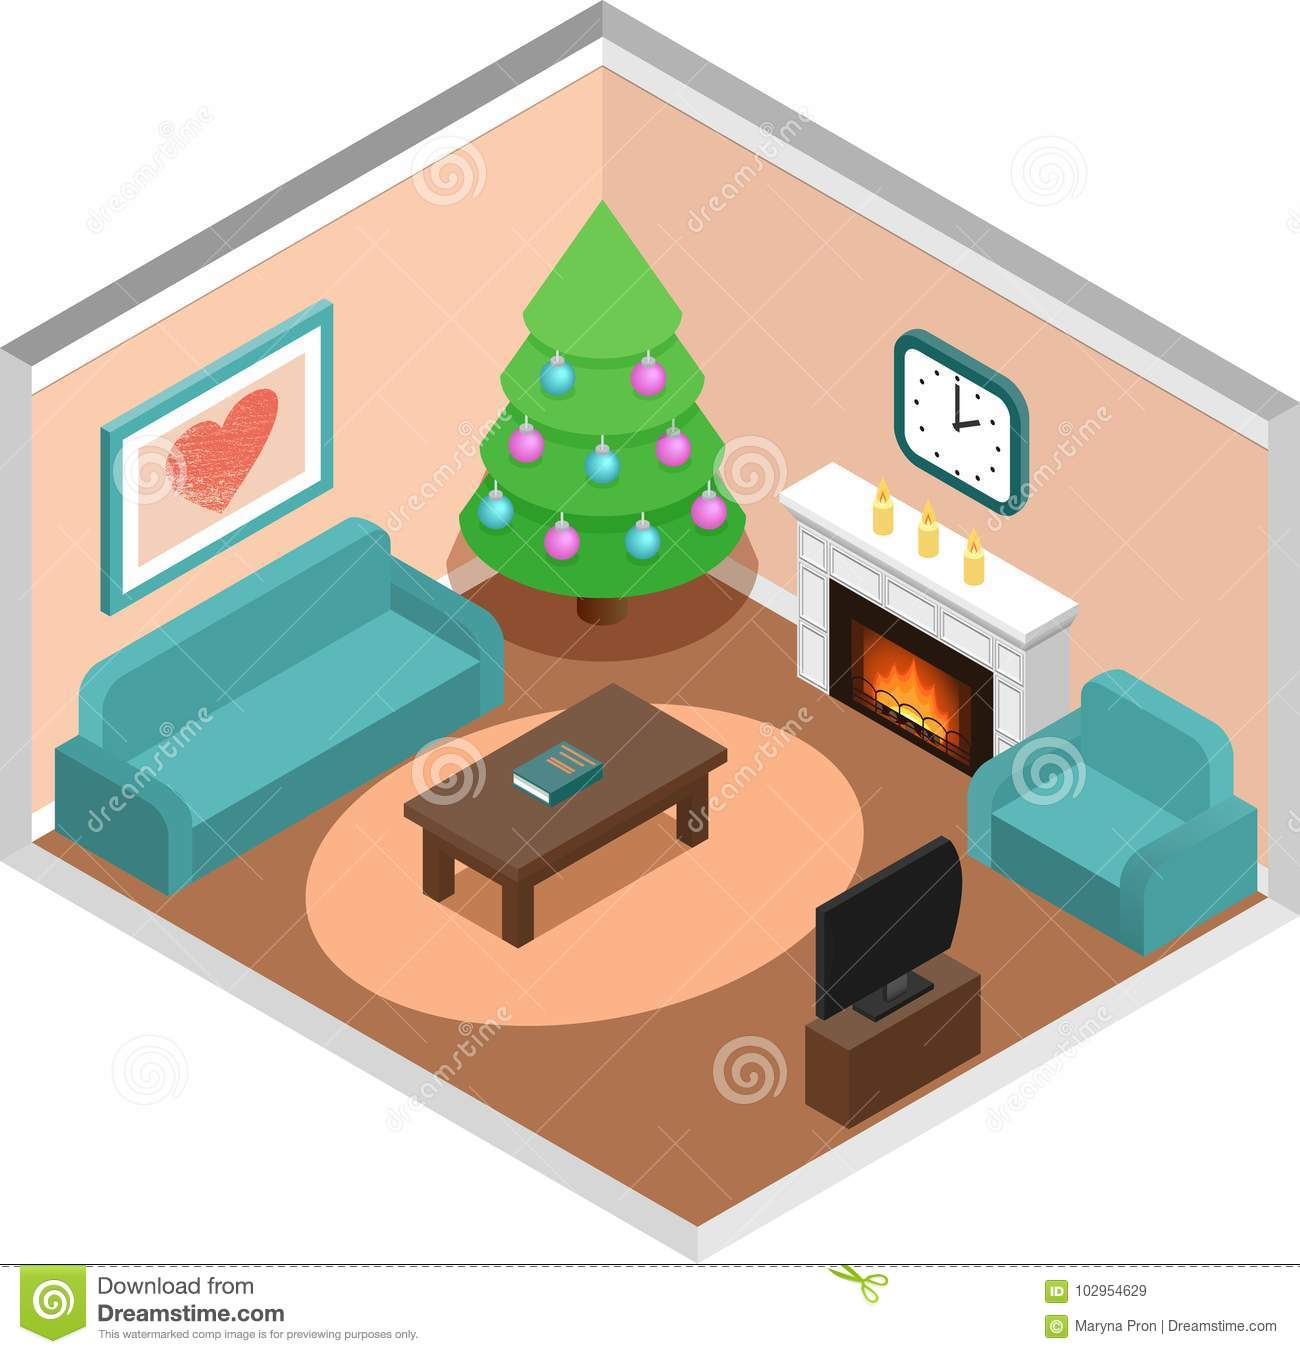 Christmas Room Stock Vector Image Of Illuminated: Living Room Interior With Christmas Tree In Isometric